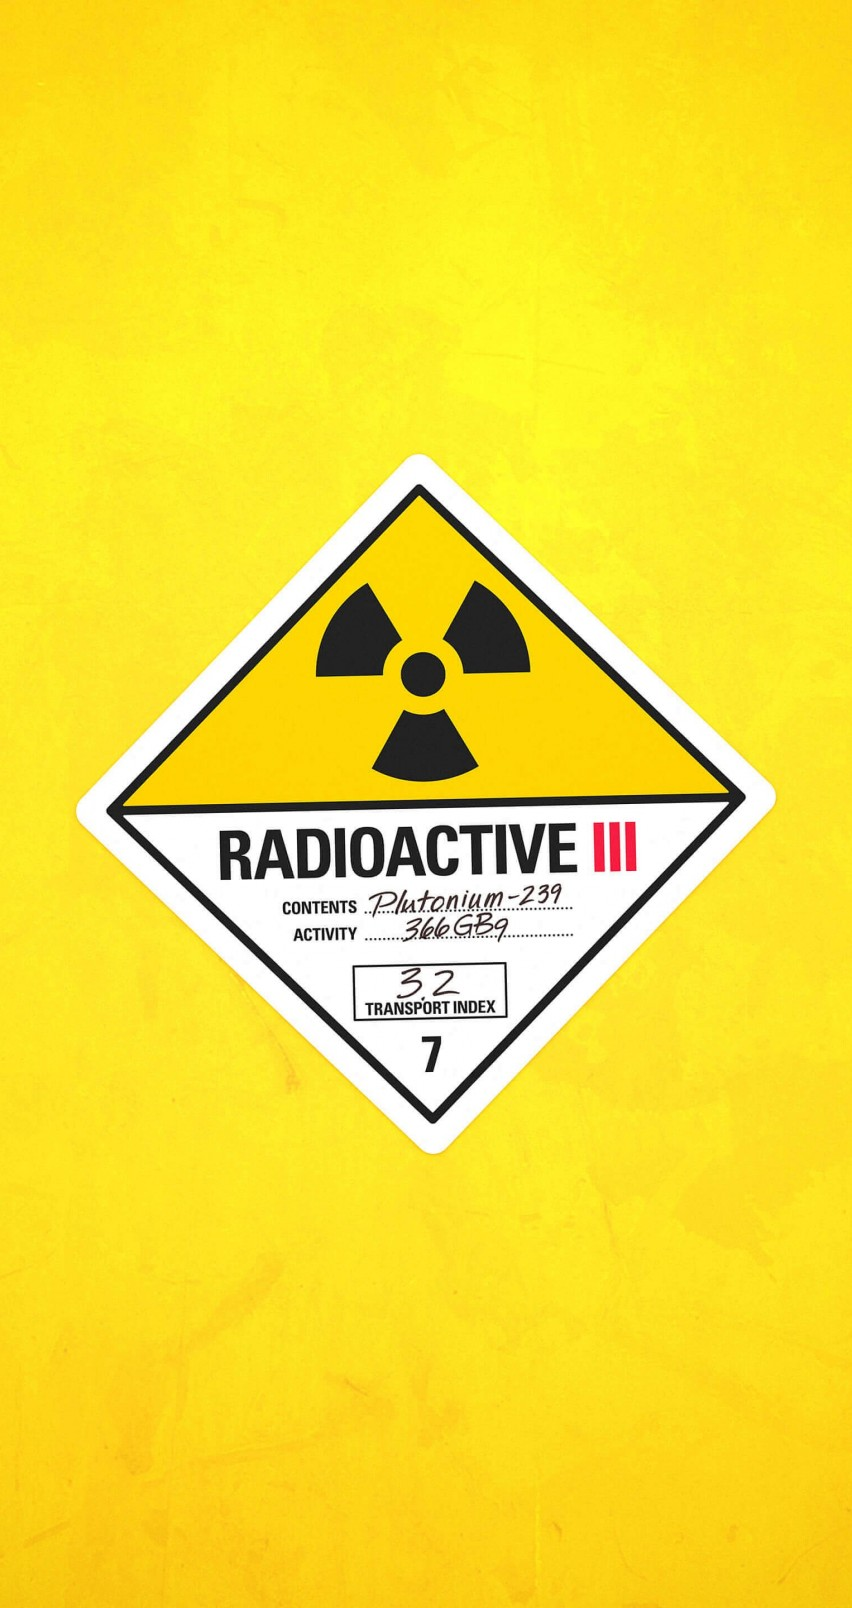 Radioactive Wallpaper for Apple iPhone 6 / 6s